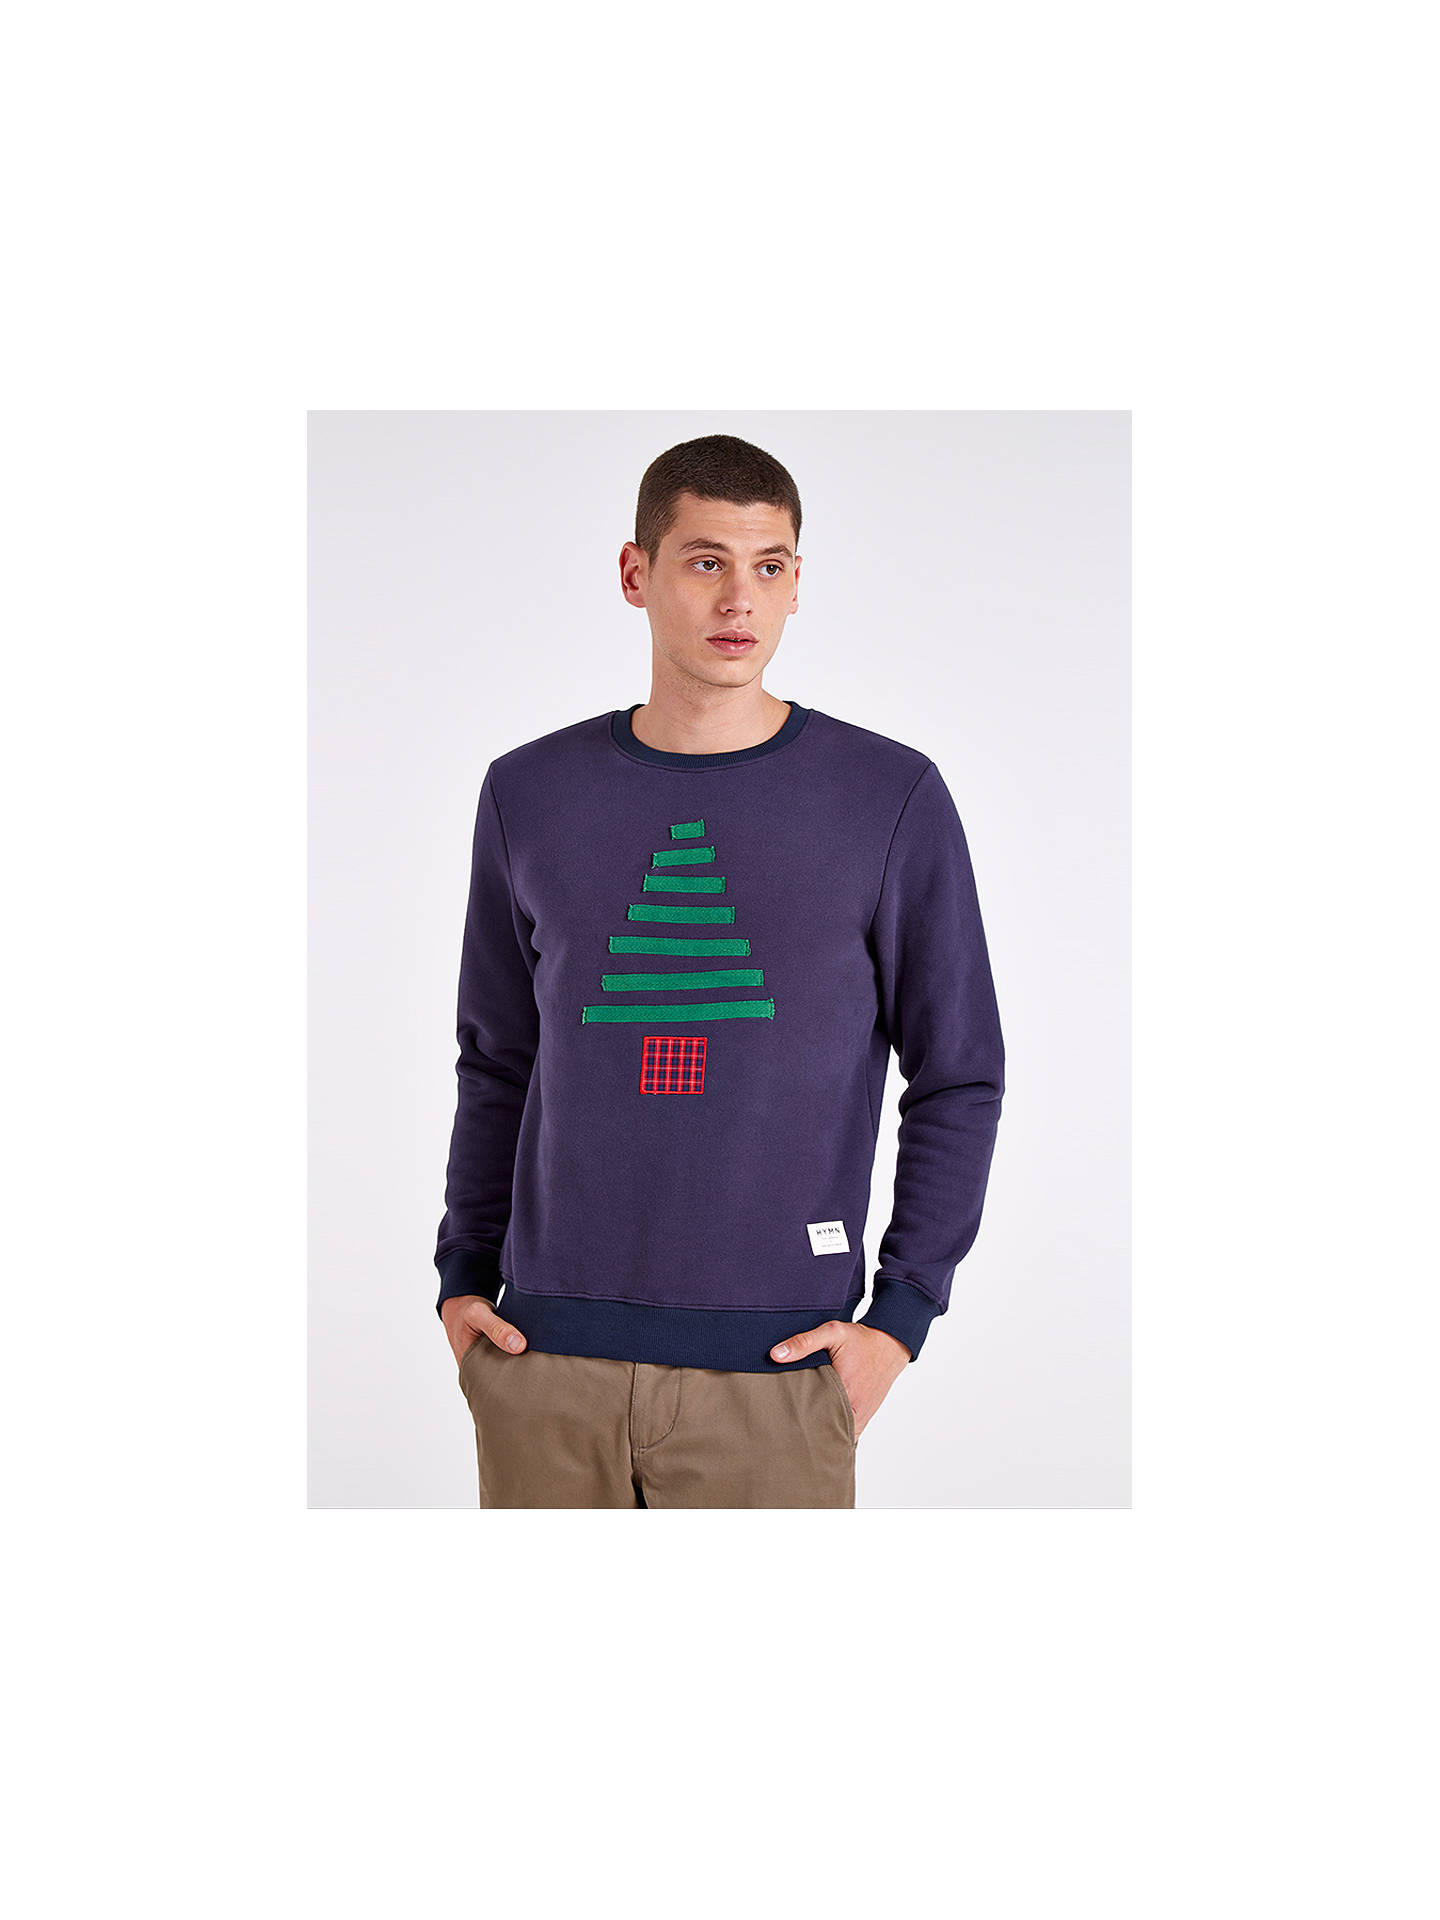 Buy HYMN Christmas Tree Sweatshirt, Navy, S Online at johnlewis.com